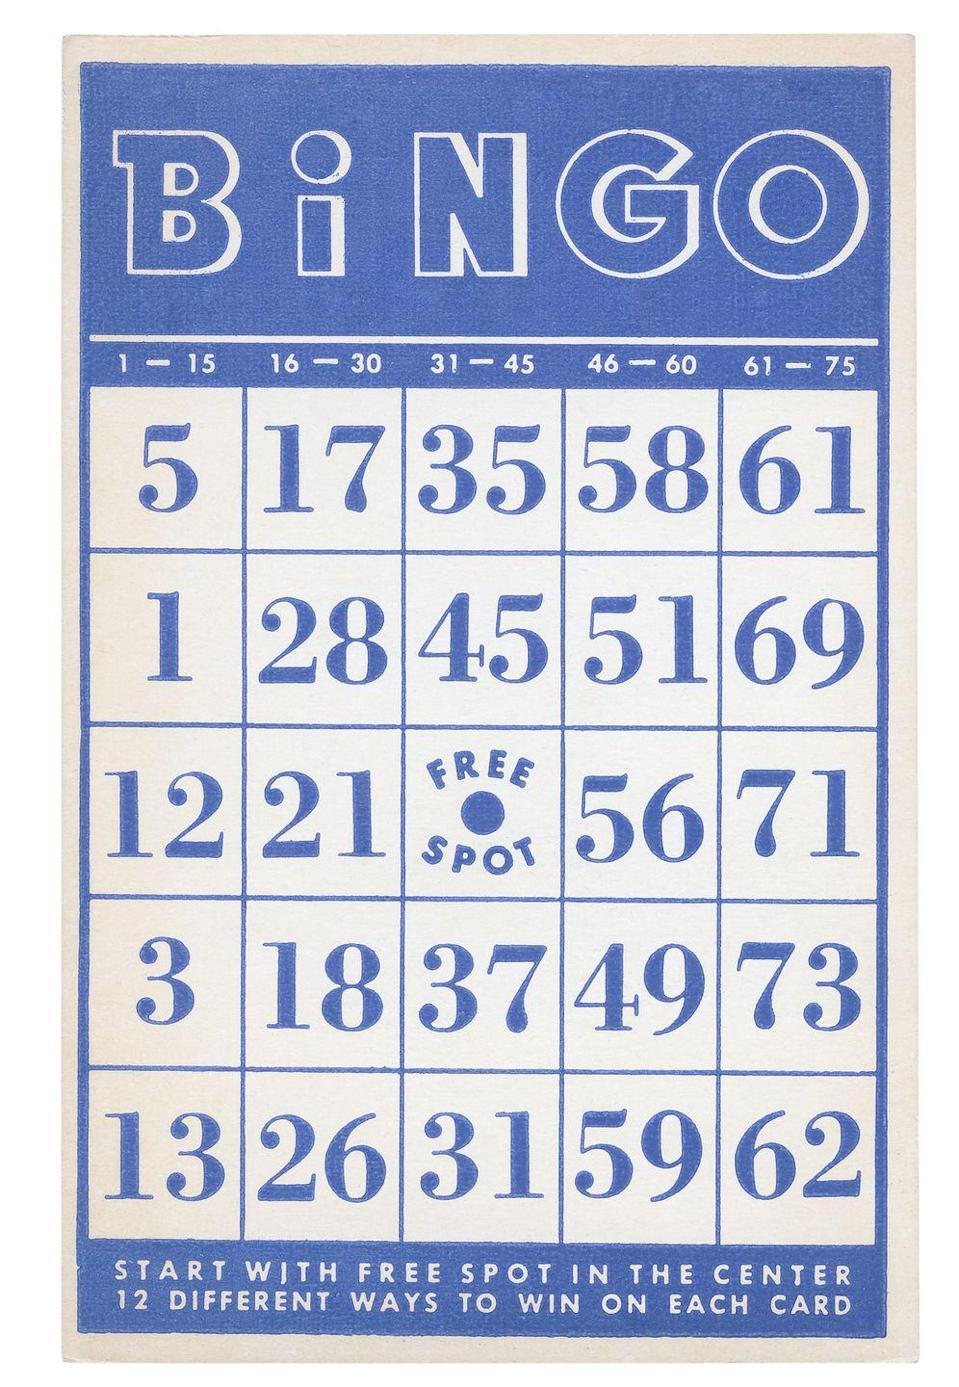 "<p>It doesn't get any easier than Bingo. You can use a website like <a href=""https://myfreebingocards.com/faq/paid-virtual-bingo-games"" rel=""nofollow noopener"" target=""_blank"" data-ylk=""slk:My Free Bingo Cards"" class=""link rapid-noclick-resp"">My Free Bingo Cards</a> to play a traditional game with a virtual caller, or you can play a custom Bingo game that revolves around a movie or TV show that your group plans to watch. Don't forget to make small fun prizes, like an IOU for a cocktail or a gift card for takeout.</p>"